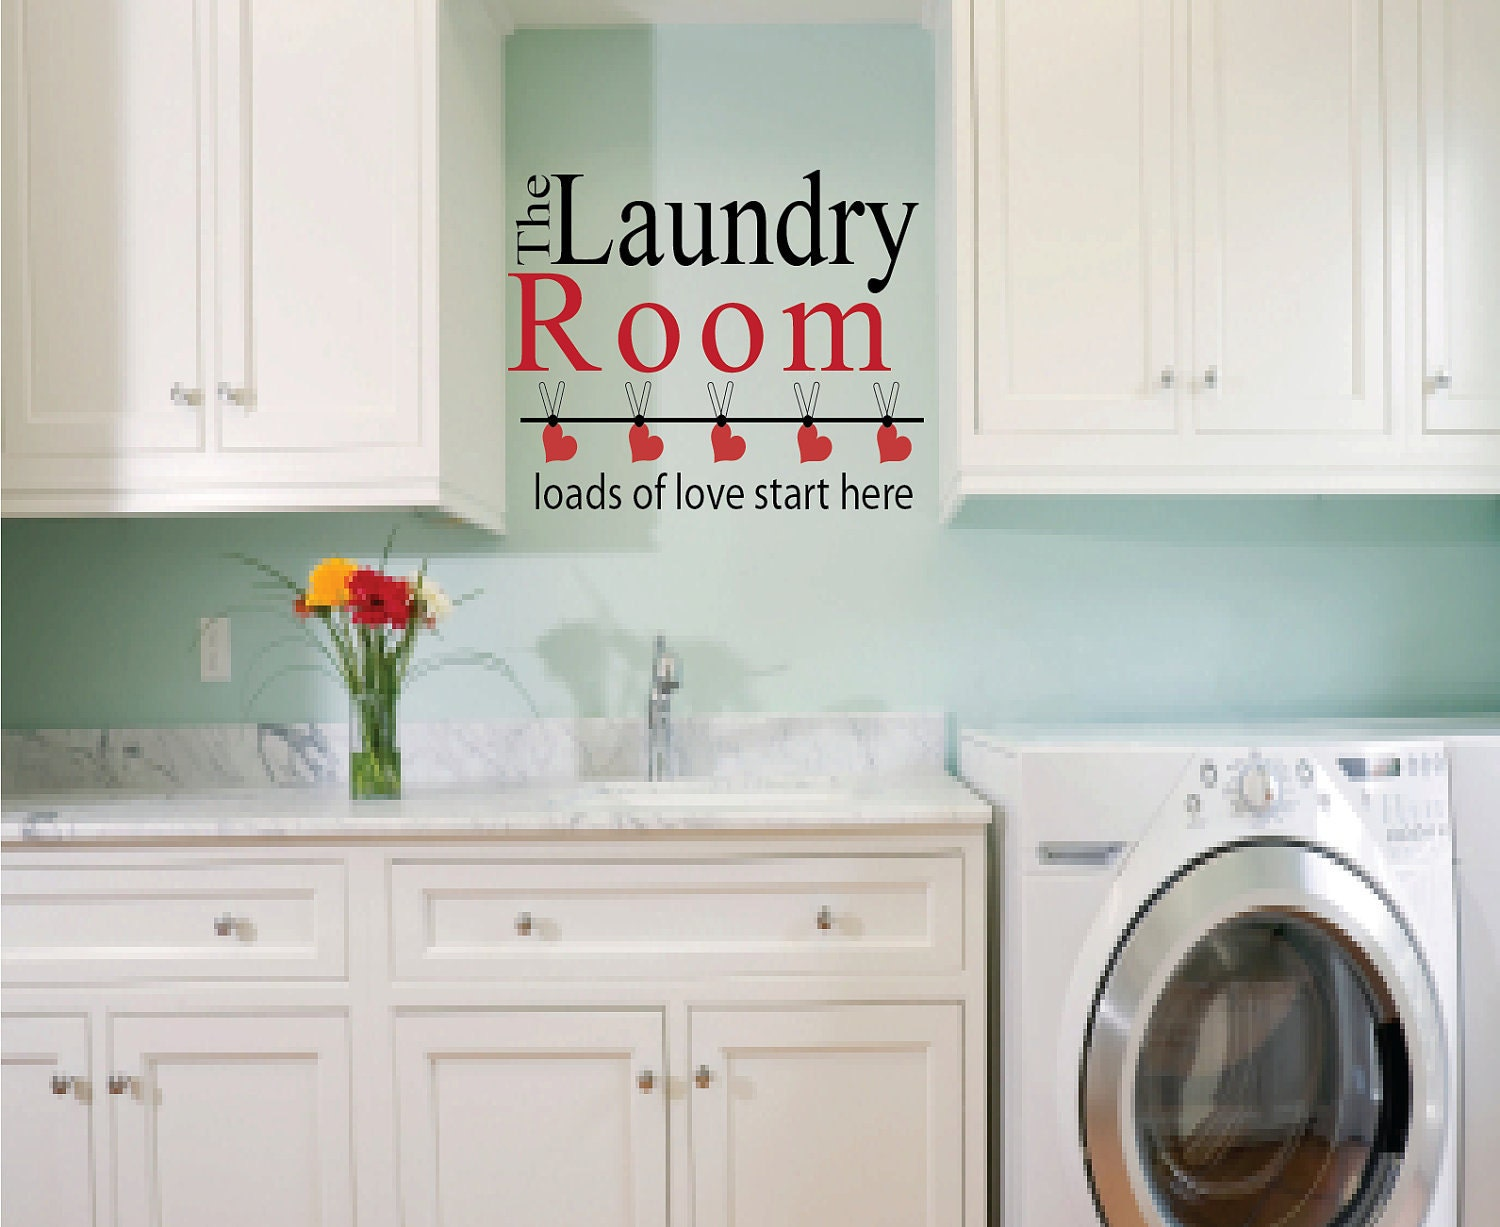 Http Etsy Com Listing 55712086 Laundry Room Wall Decal Loads Of Love